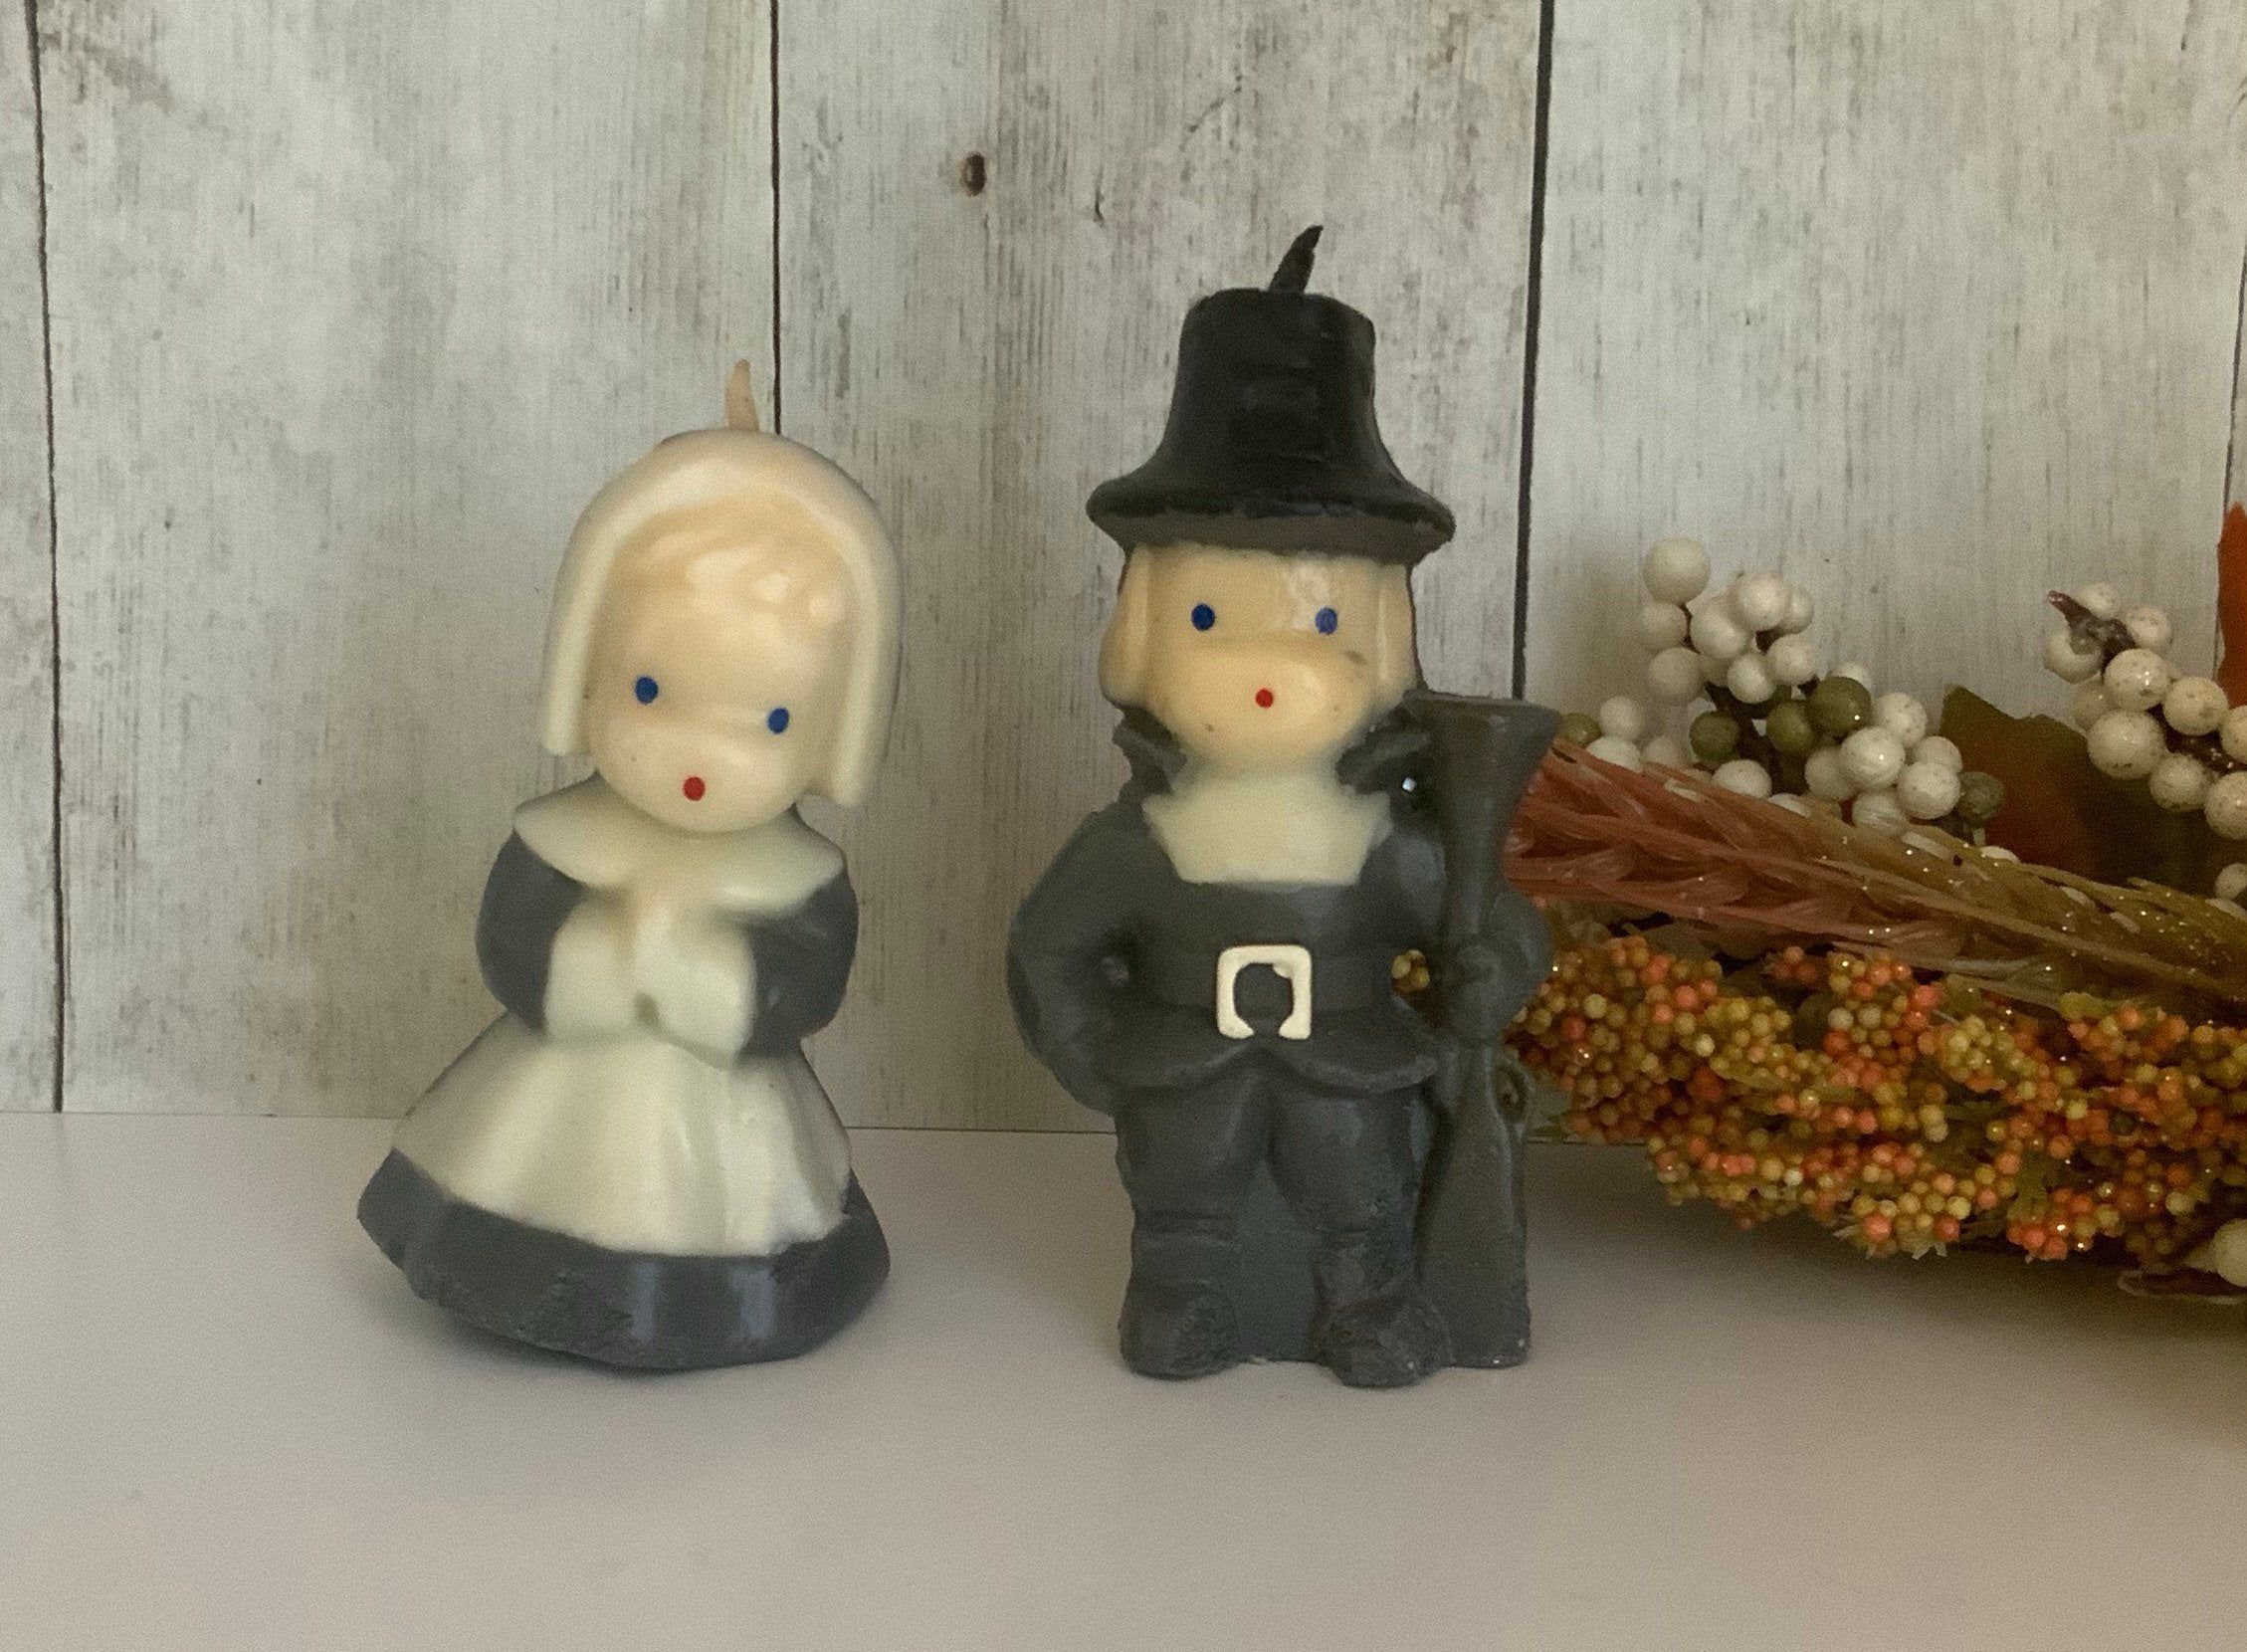 Vintage Gurley Pilgrim Candles, Thanksgiving Decor, Thanksgiving Dinner Centerpiece #thanksgivingdinnertable